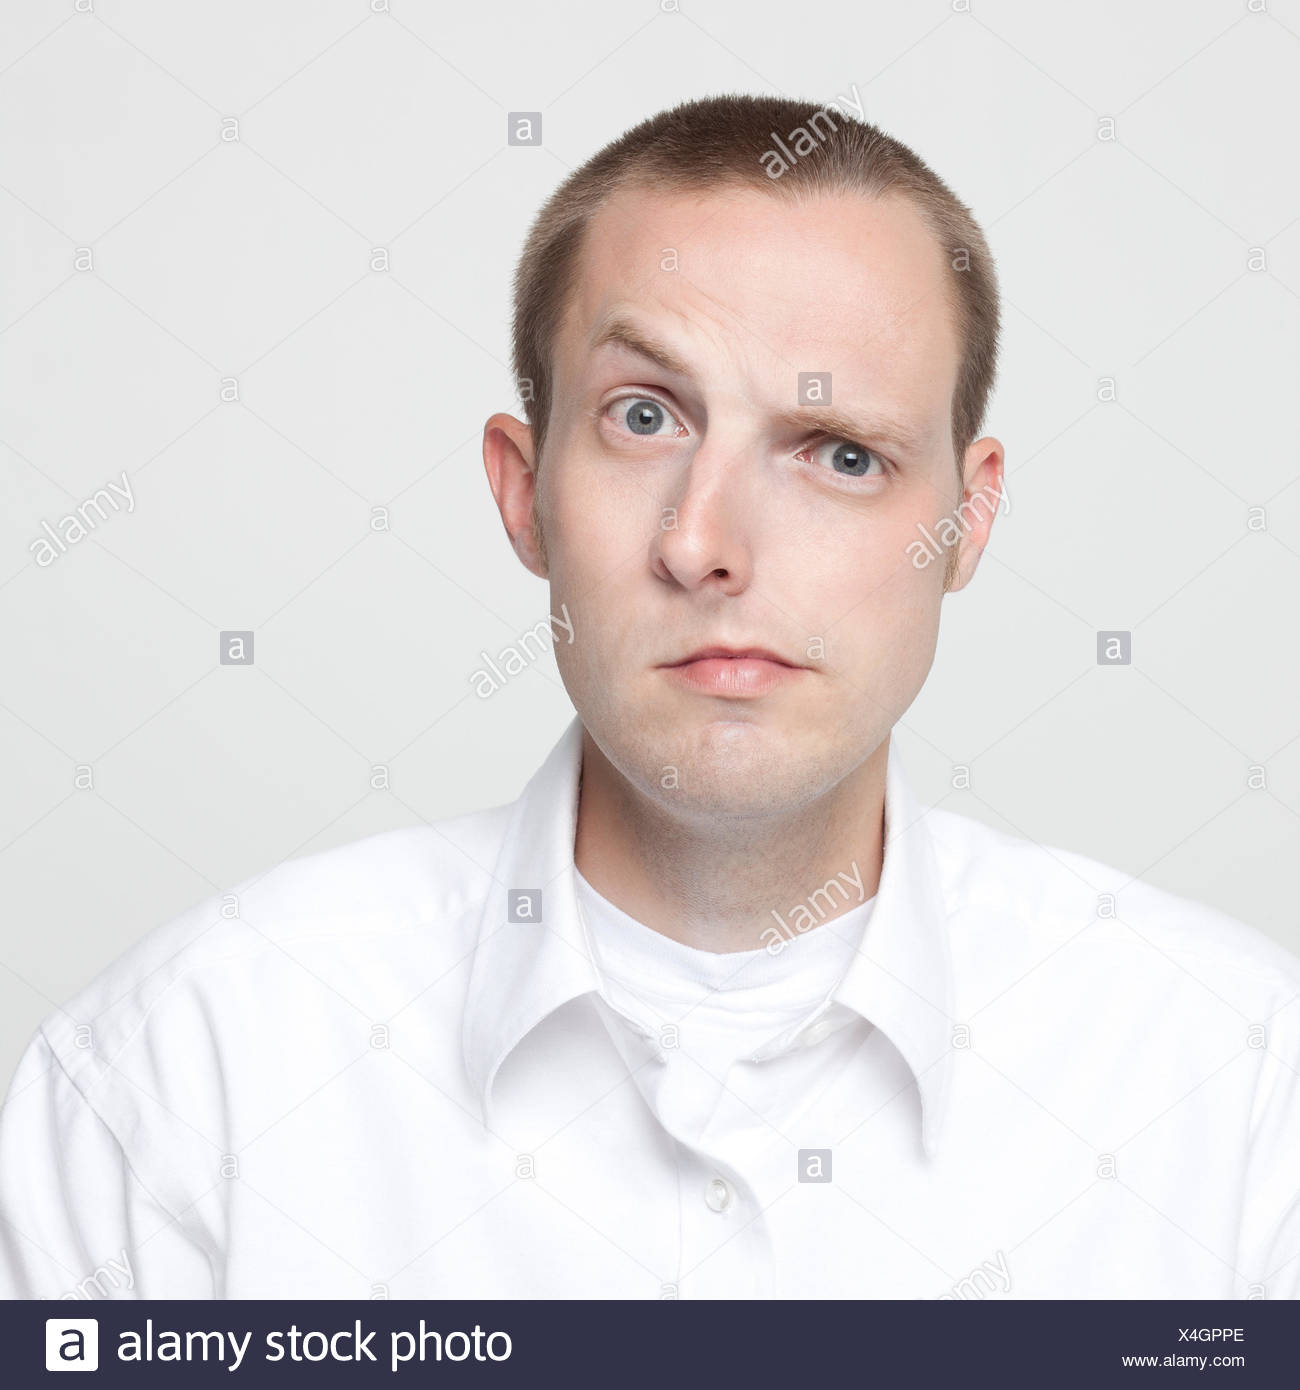 studio portrait of man with deformed face stock photo 278193622 alamy